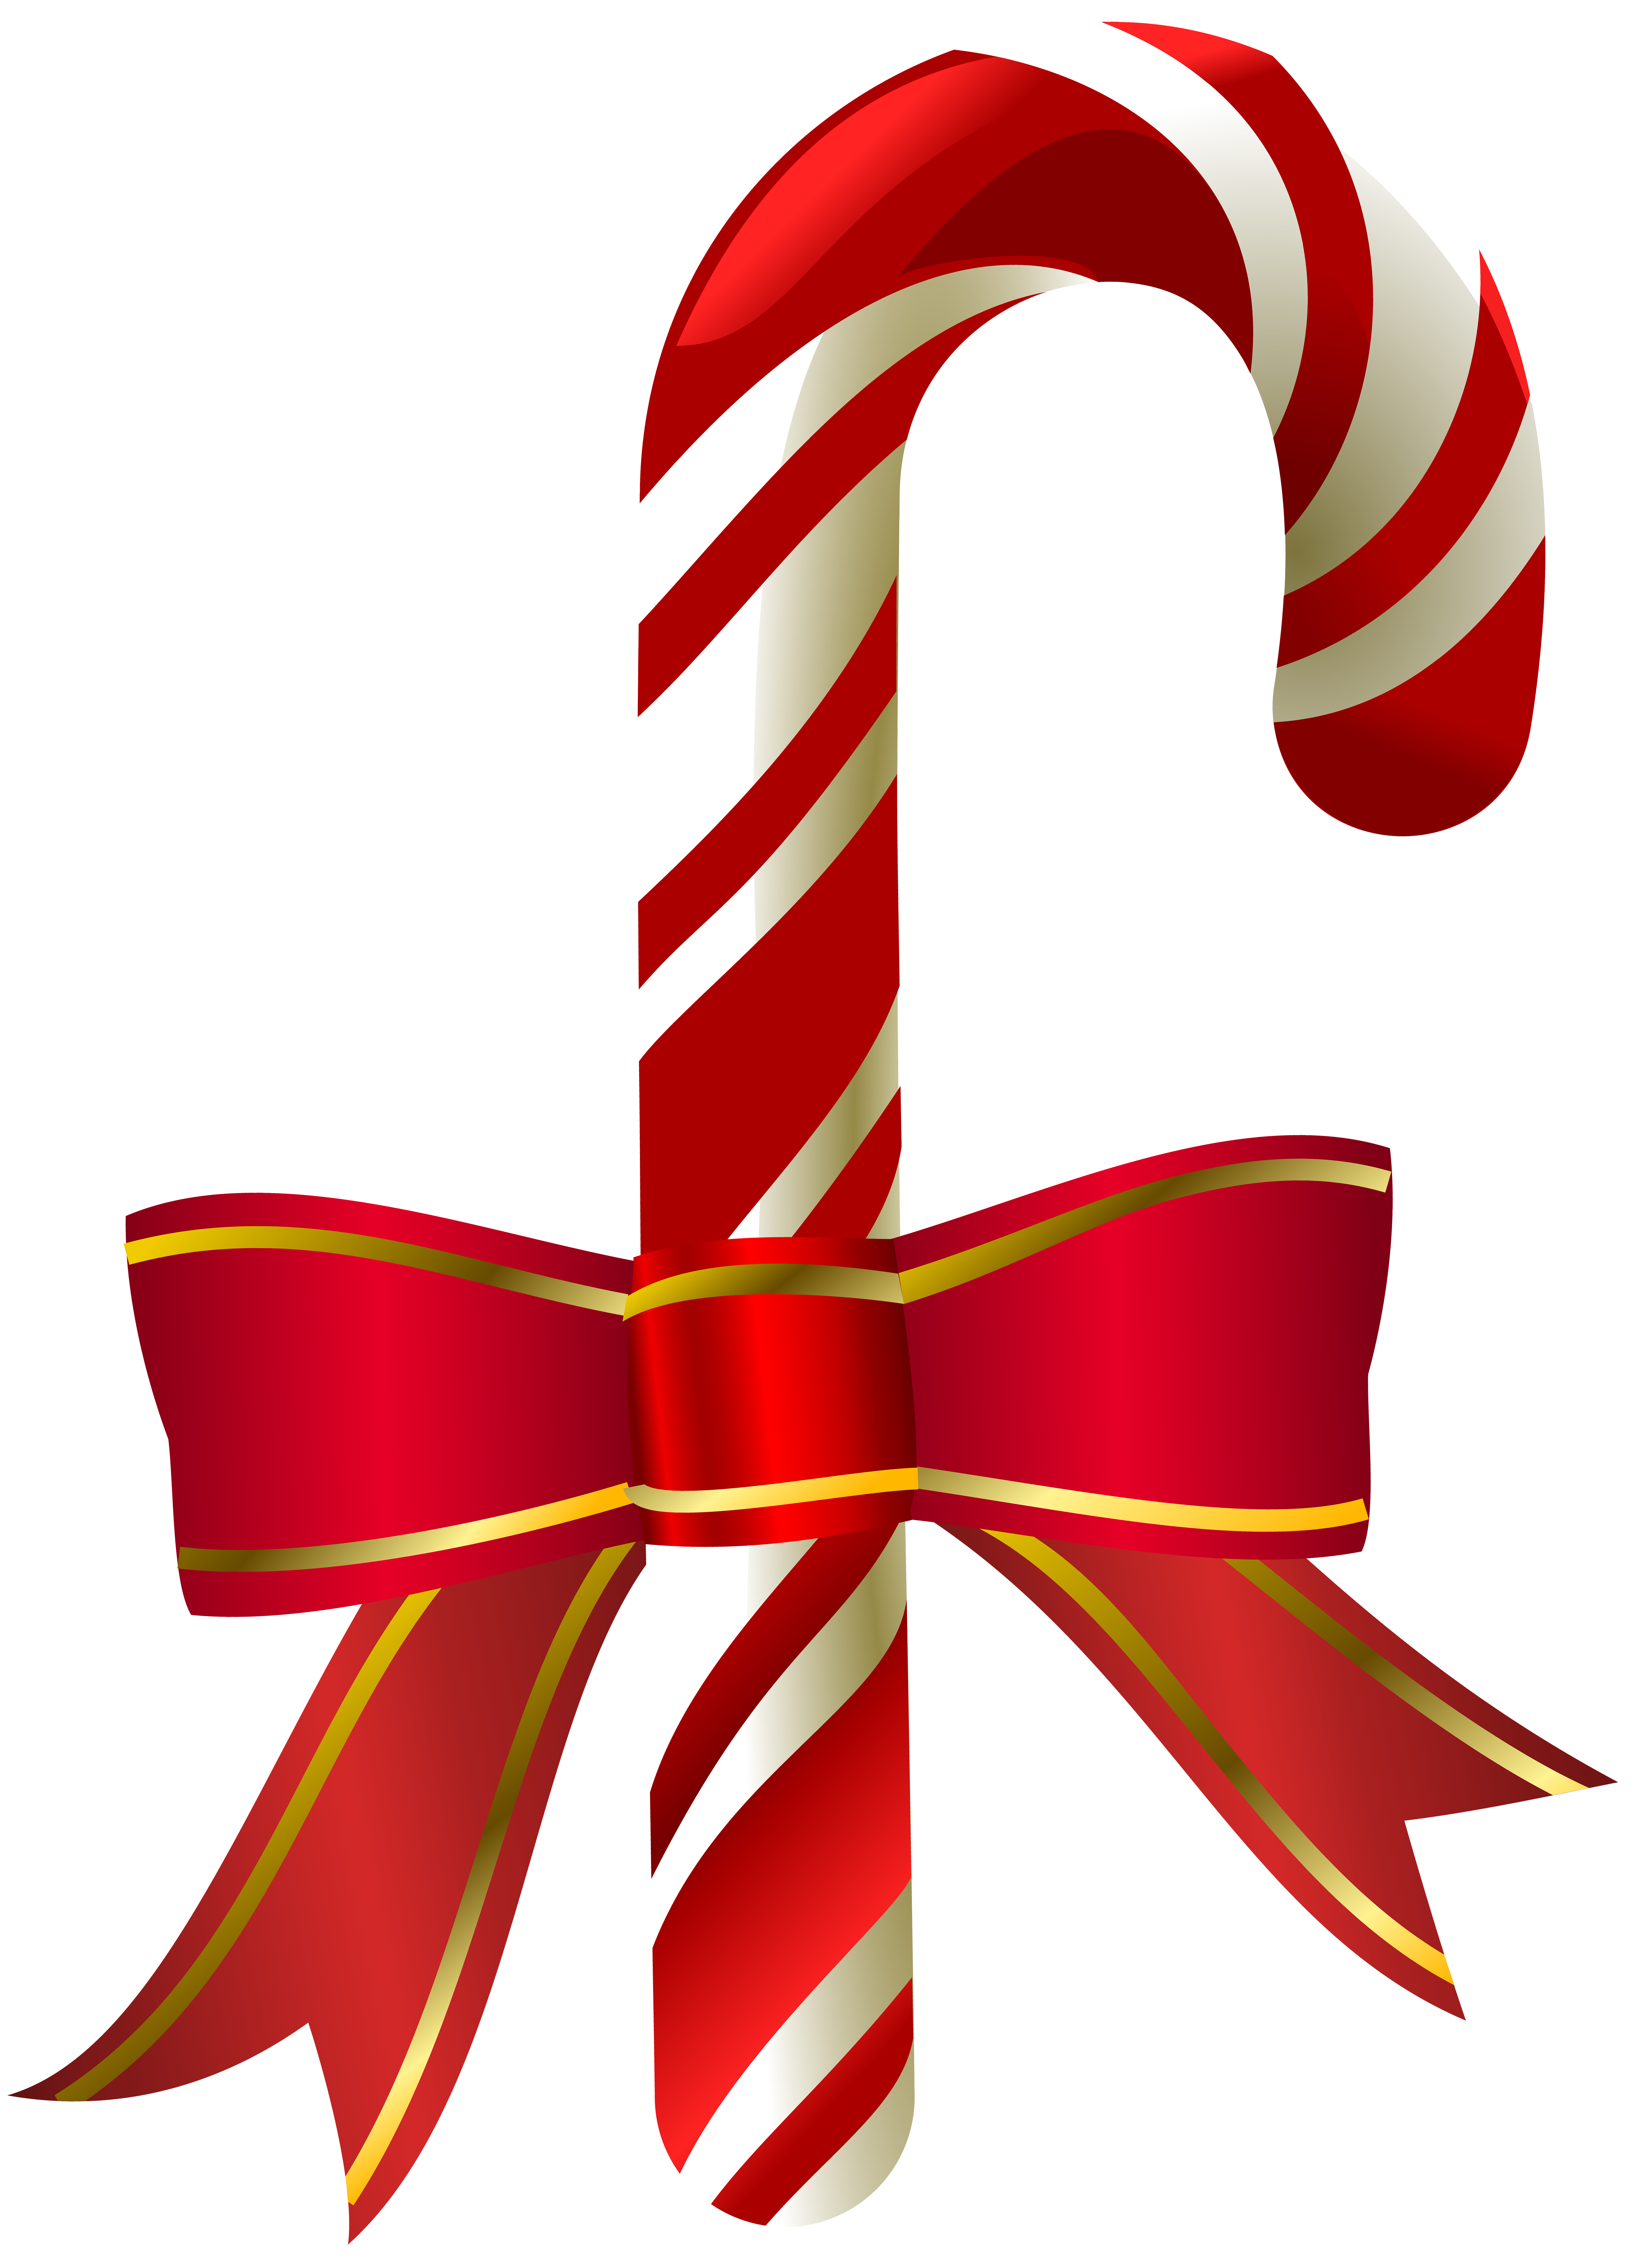 Movies clipart candy. Christmas cane transparent png